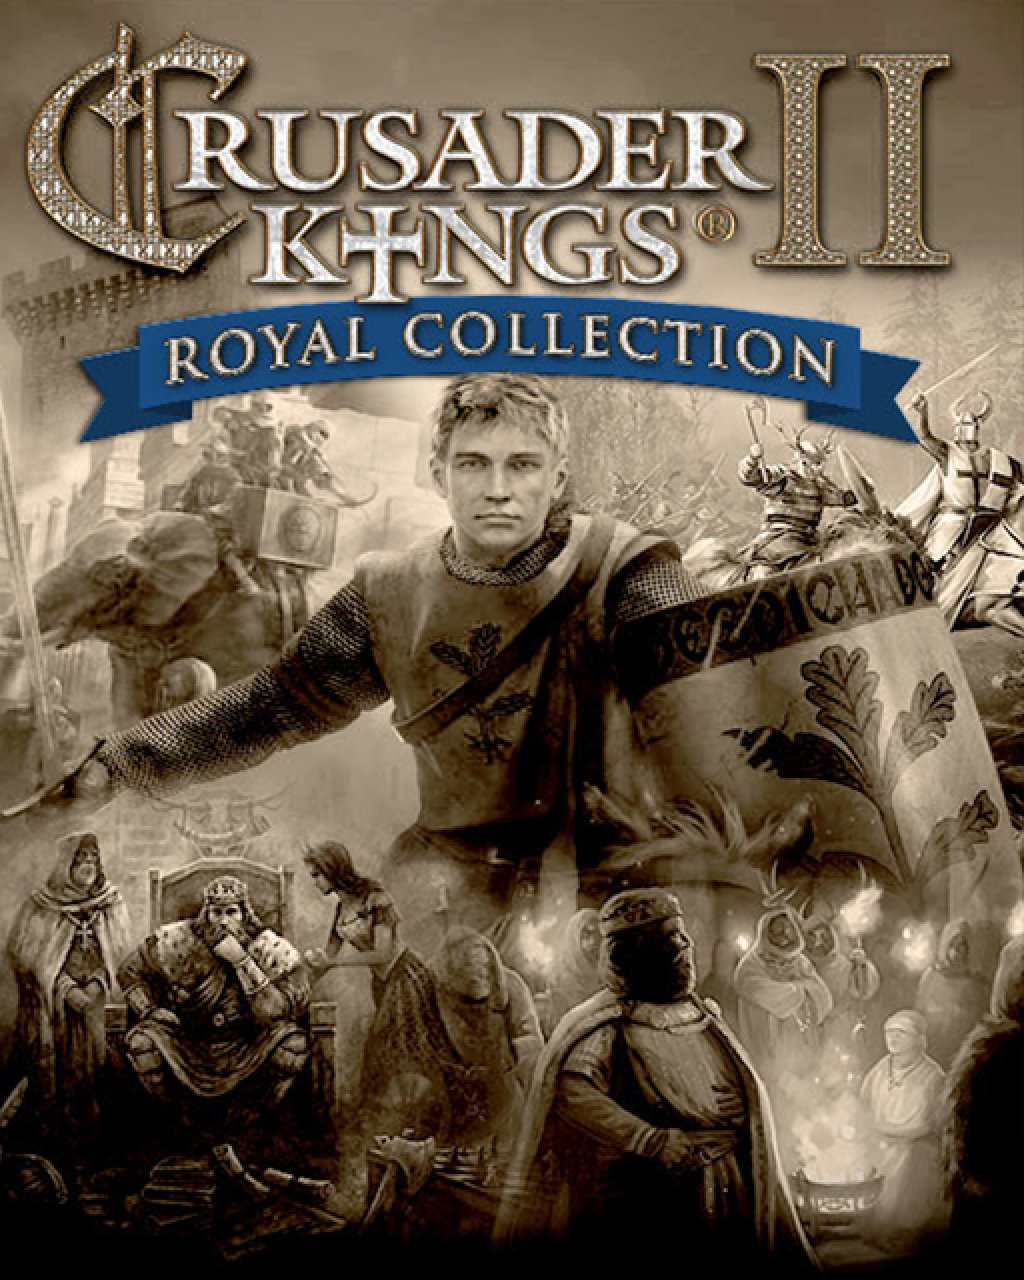 Crusader Kings II Royal Collection